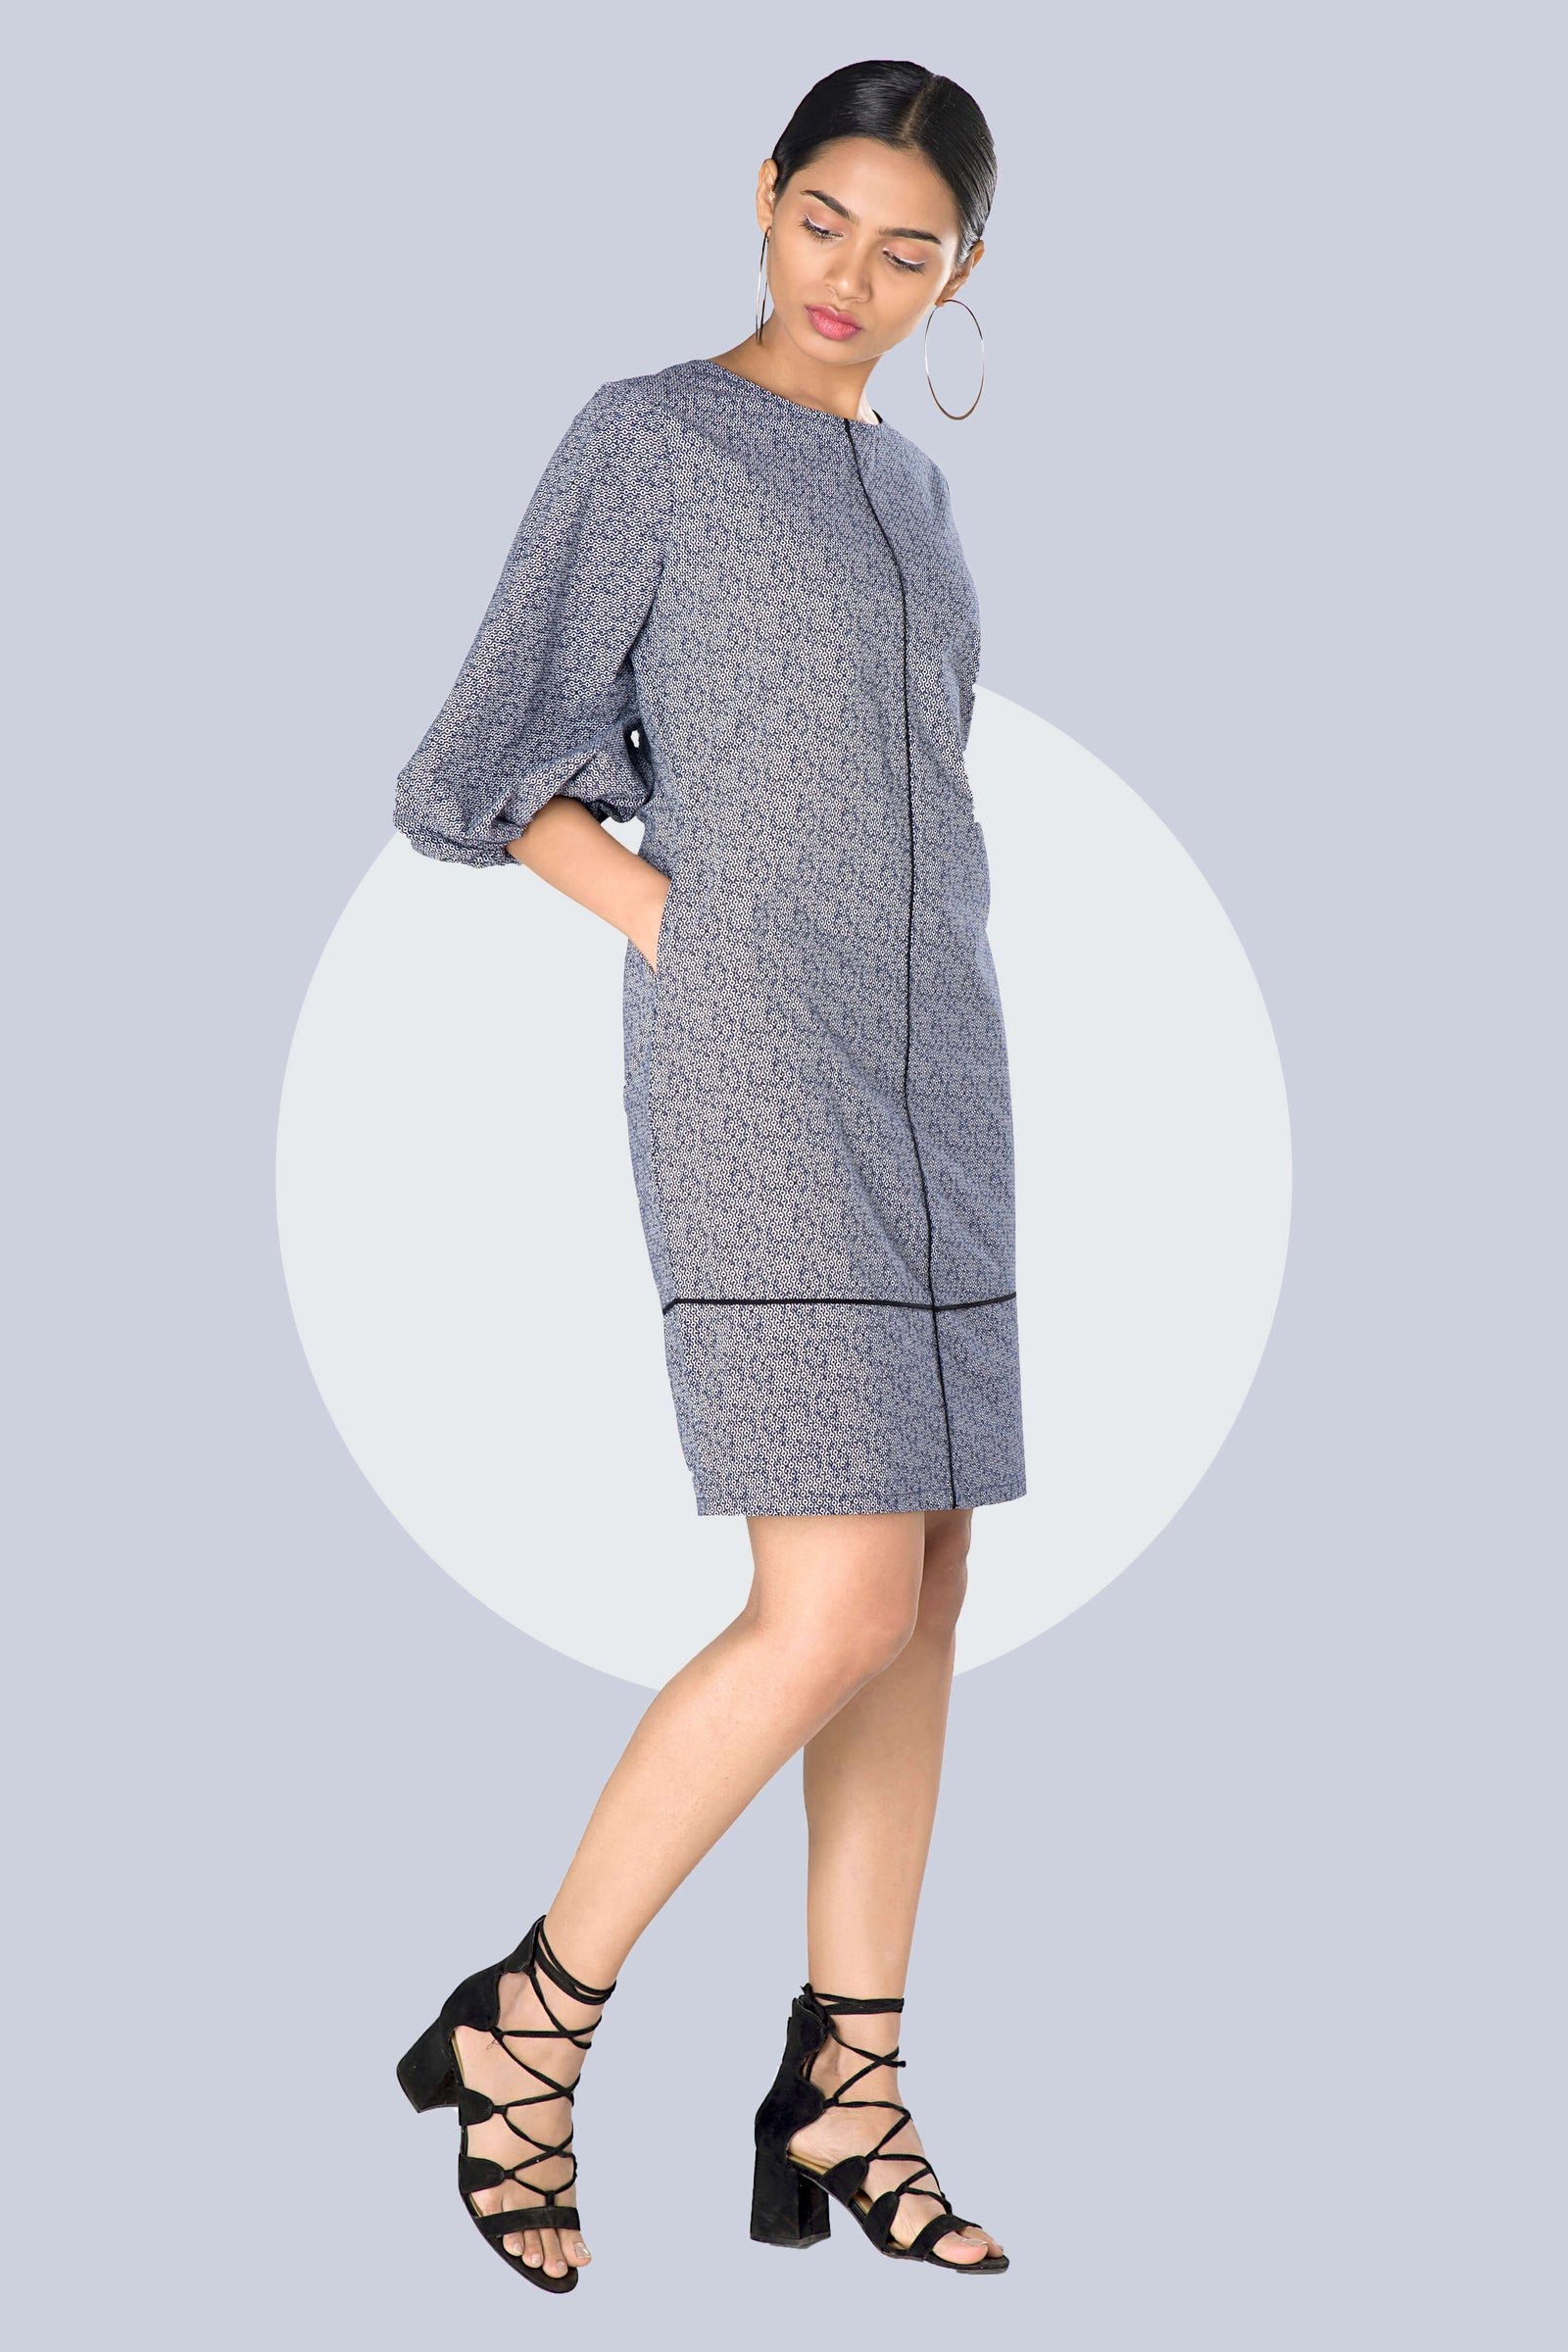 work dress grey women